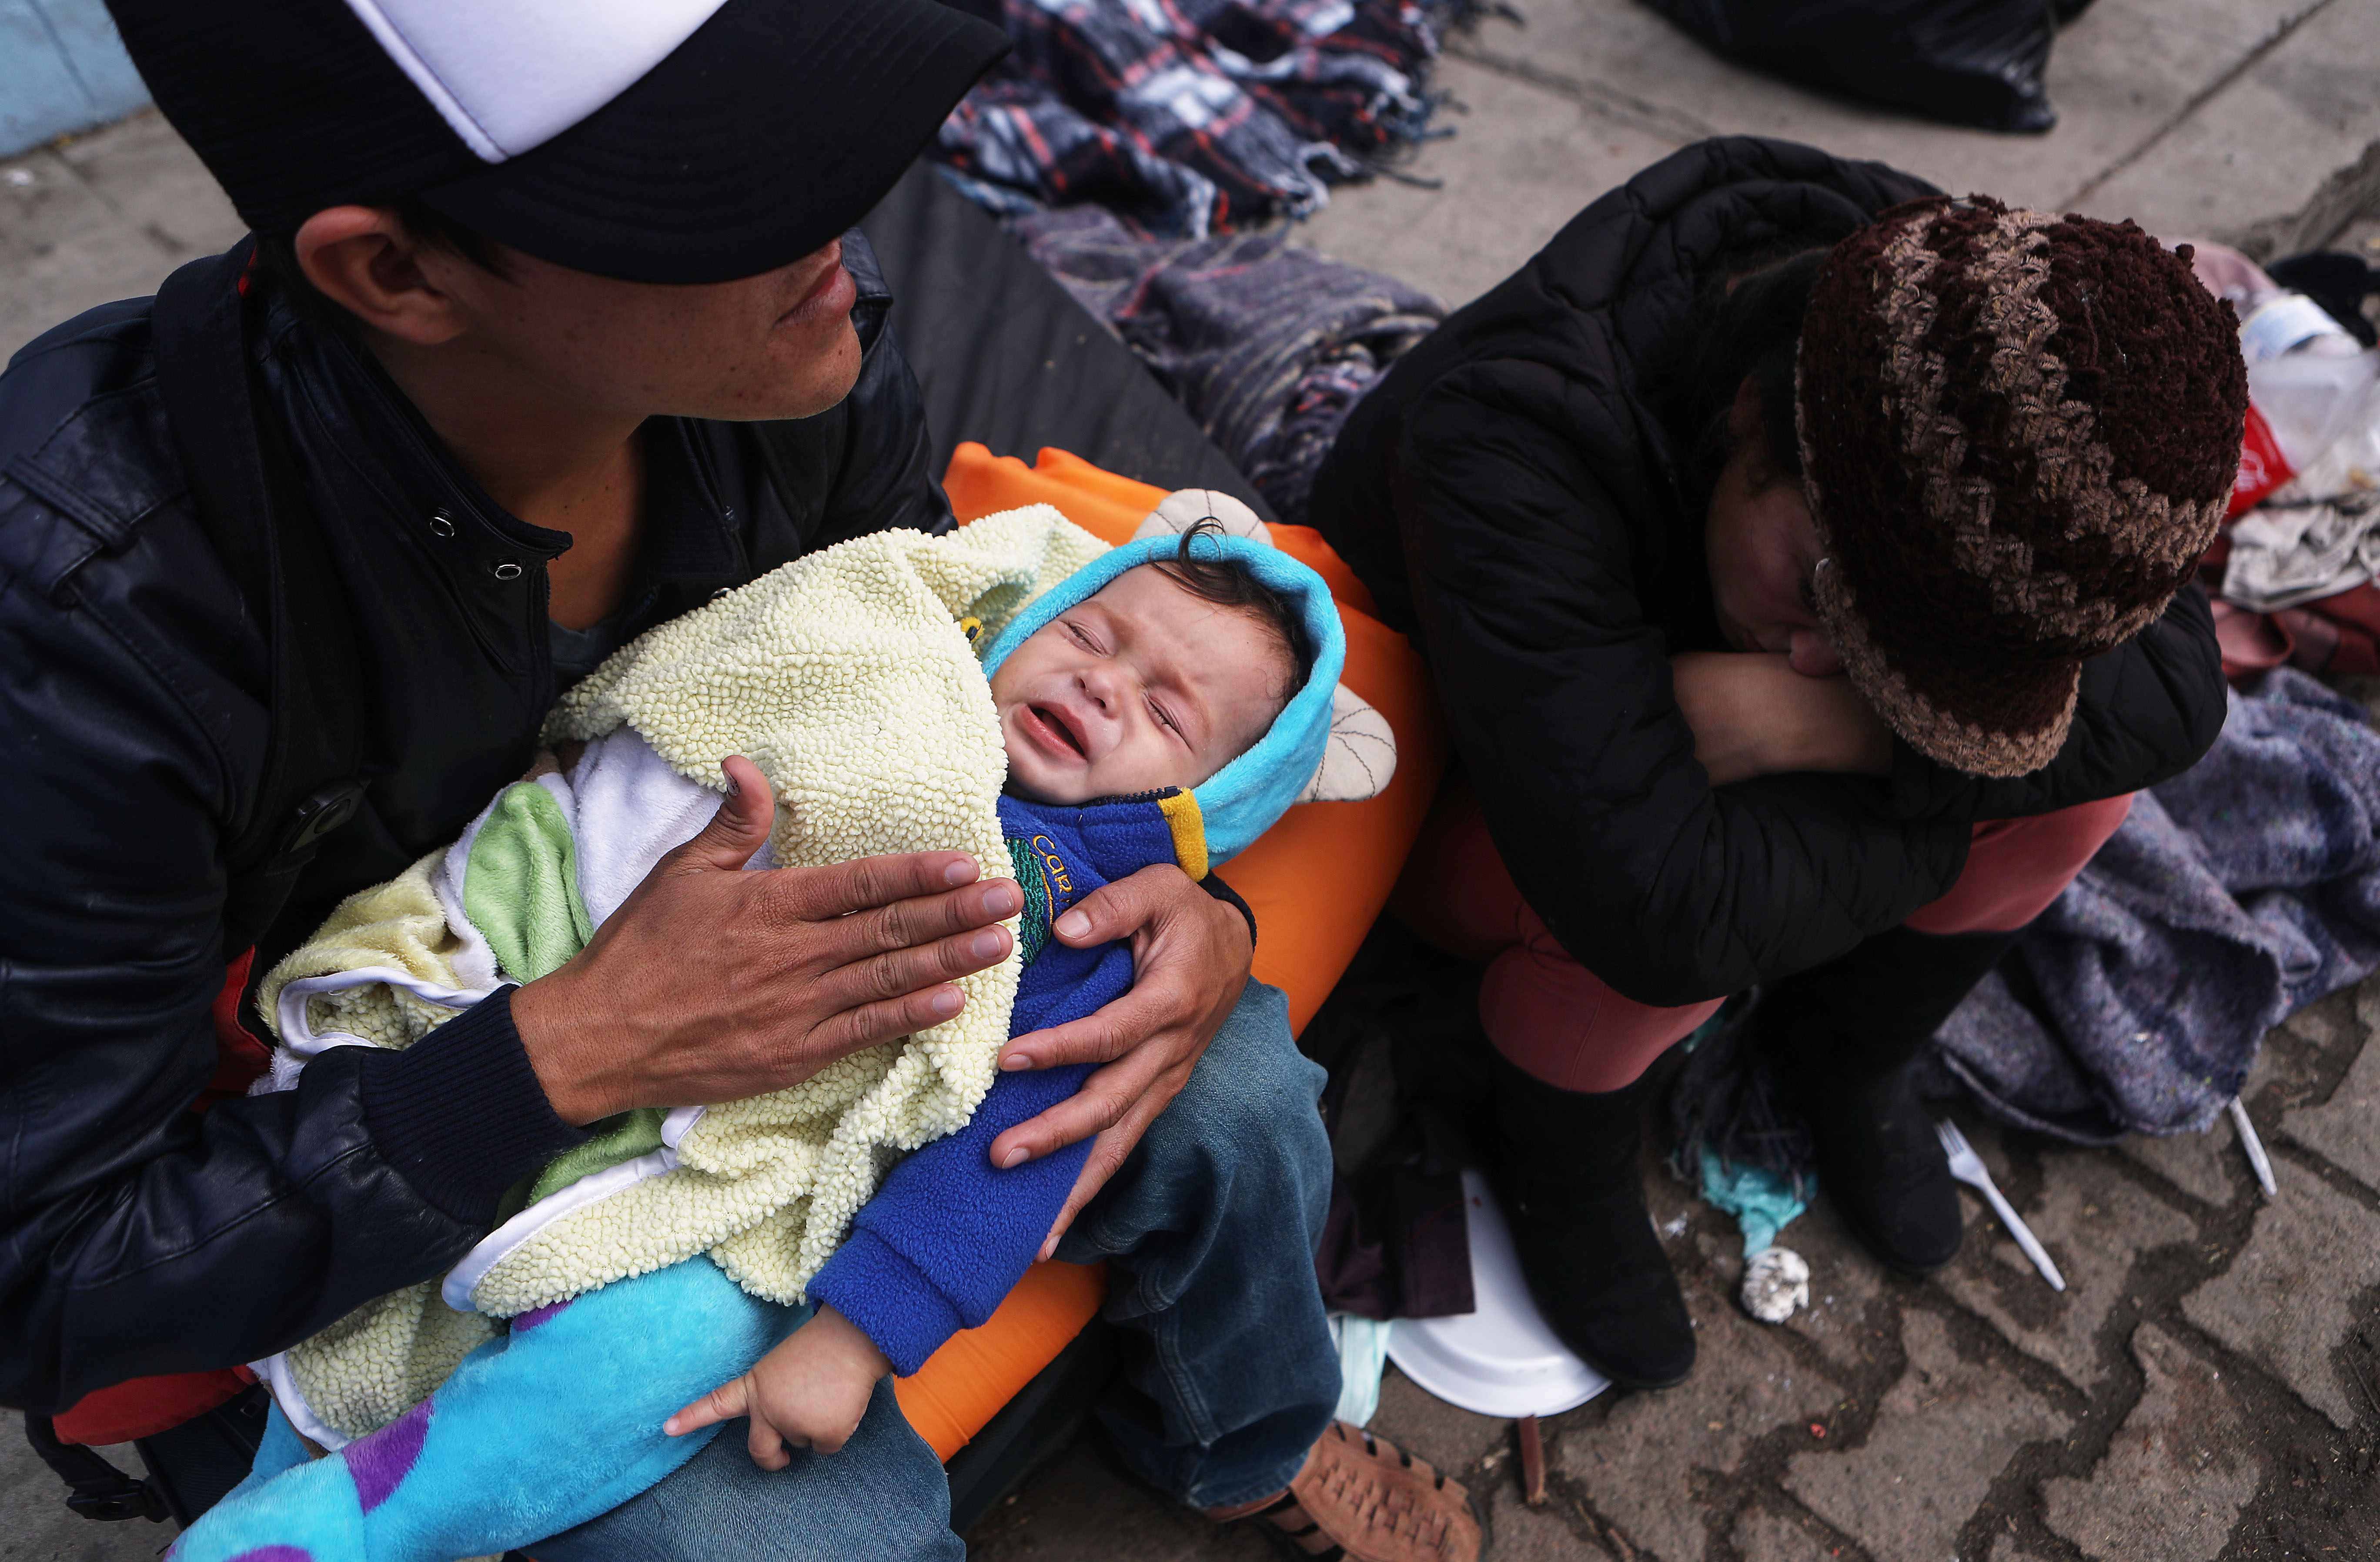 Honduran father Alexandre holds his son Karmaliel, who is sick with a fever